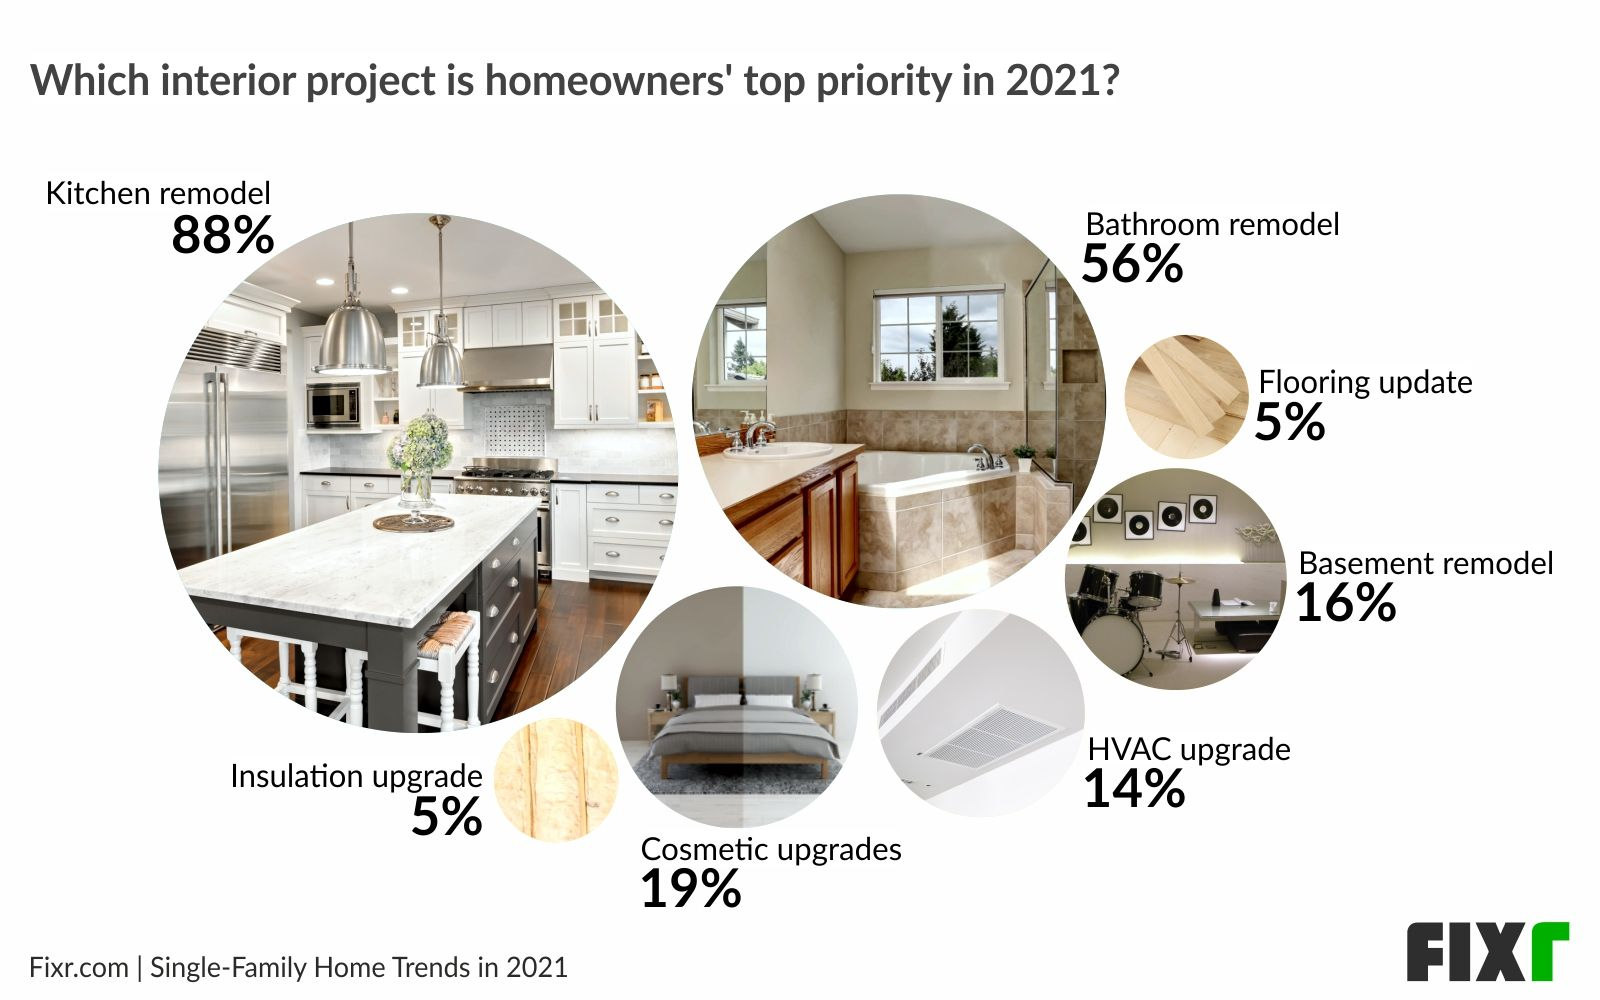 Home remodeling trends 2021 - Top interior projects